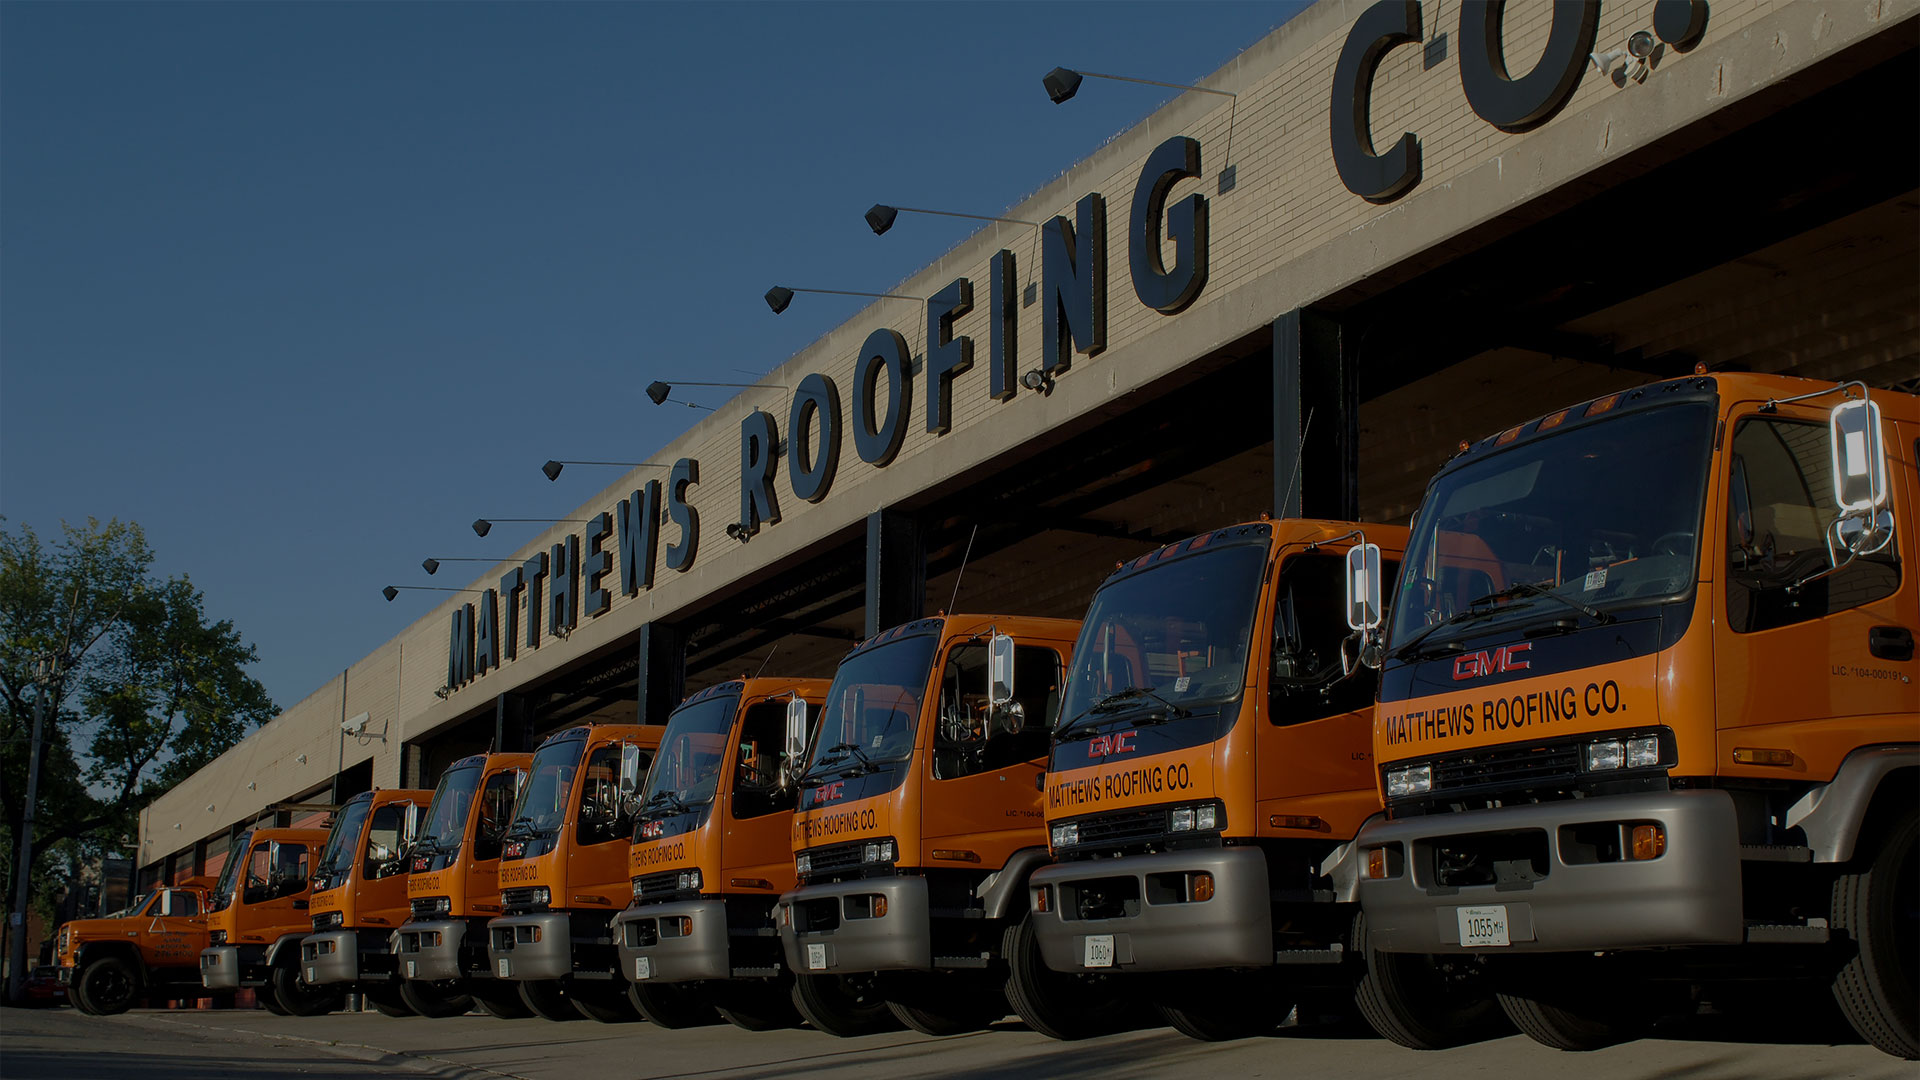 Matthew Roofing Chicago Fleet